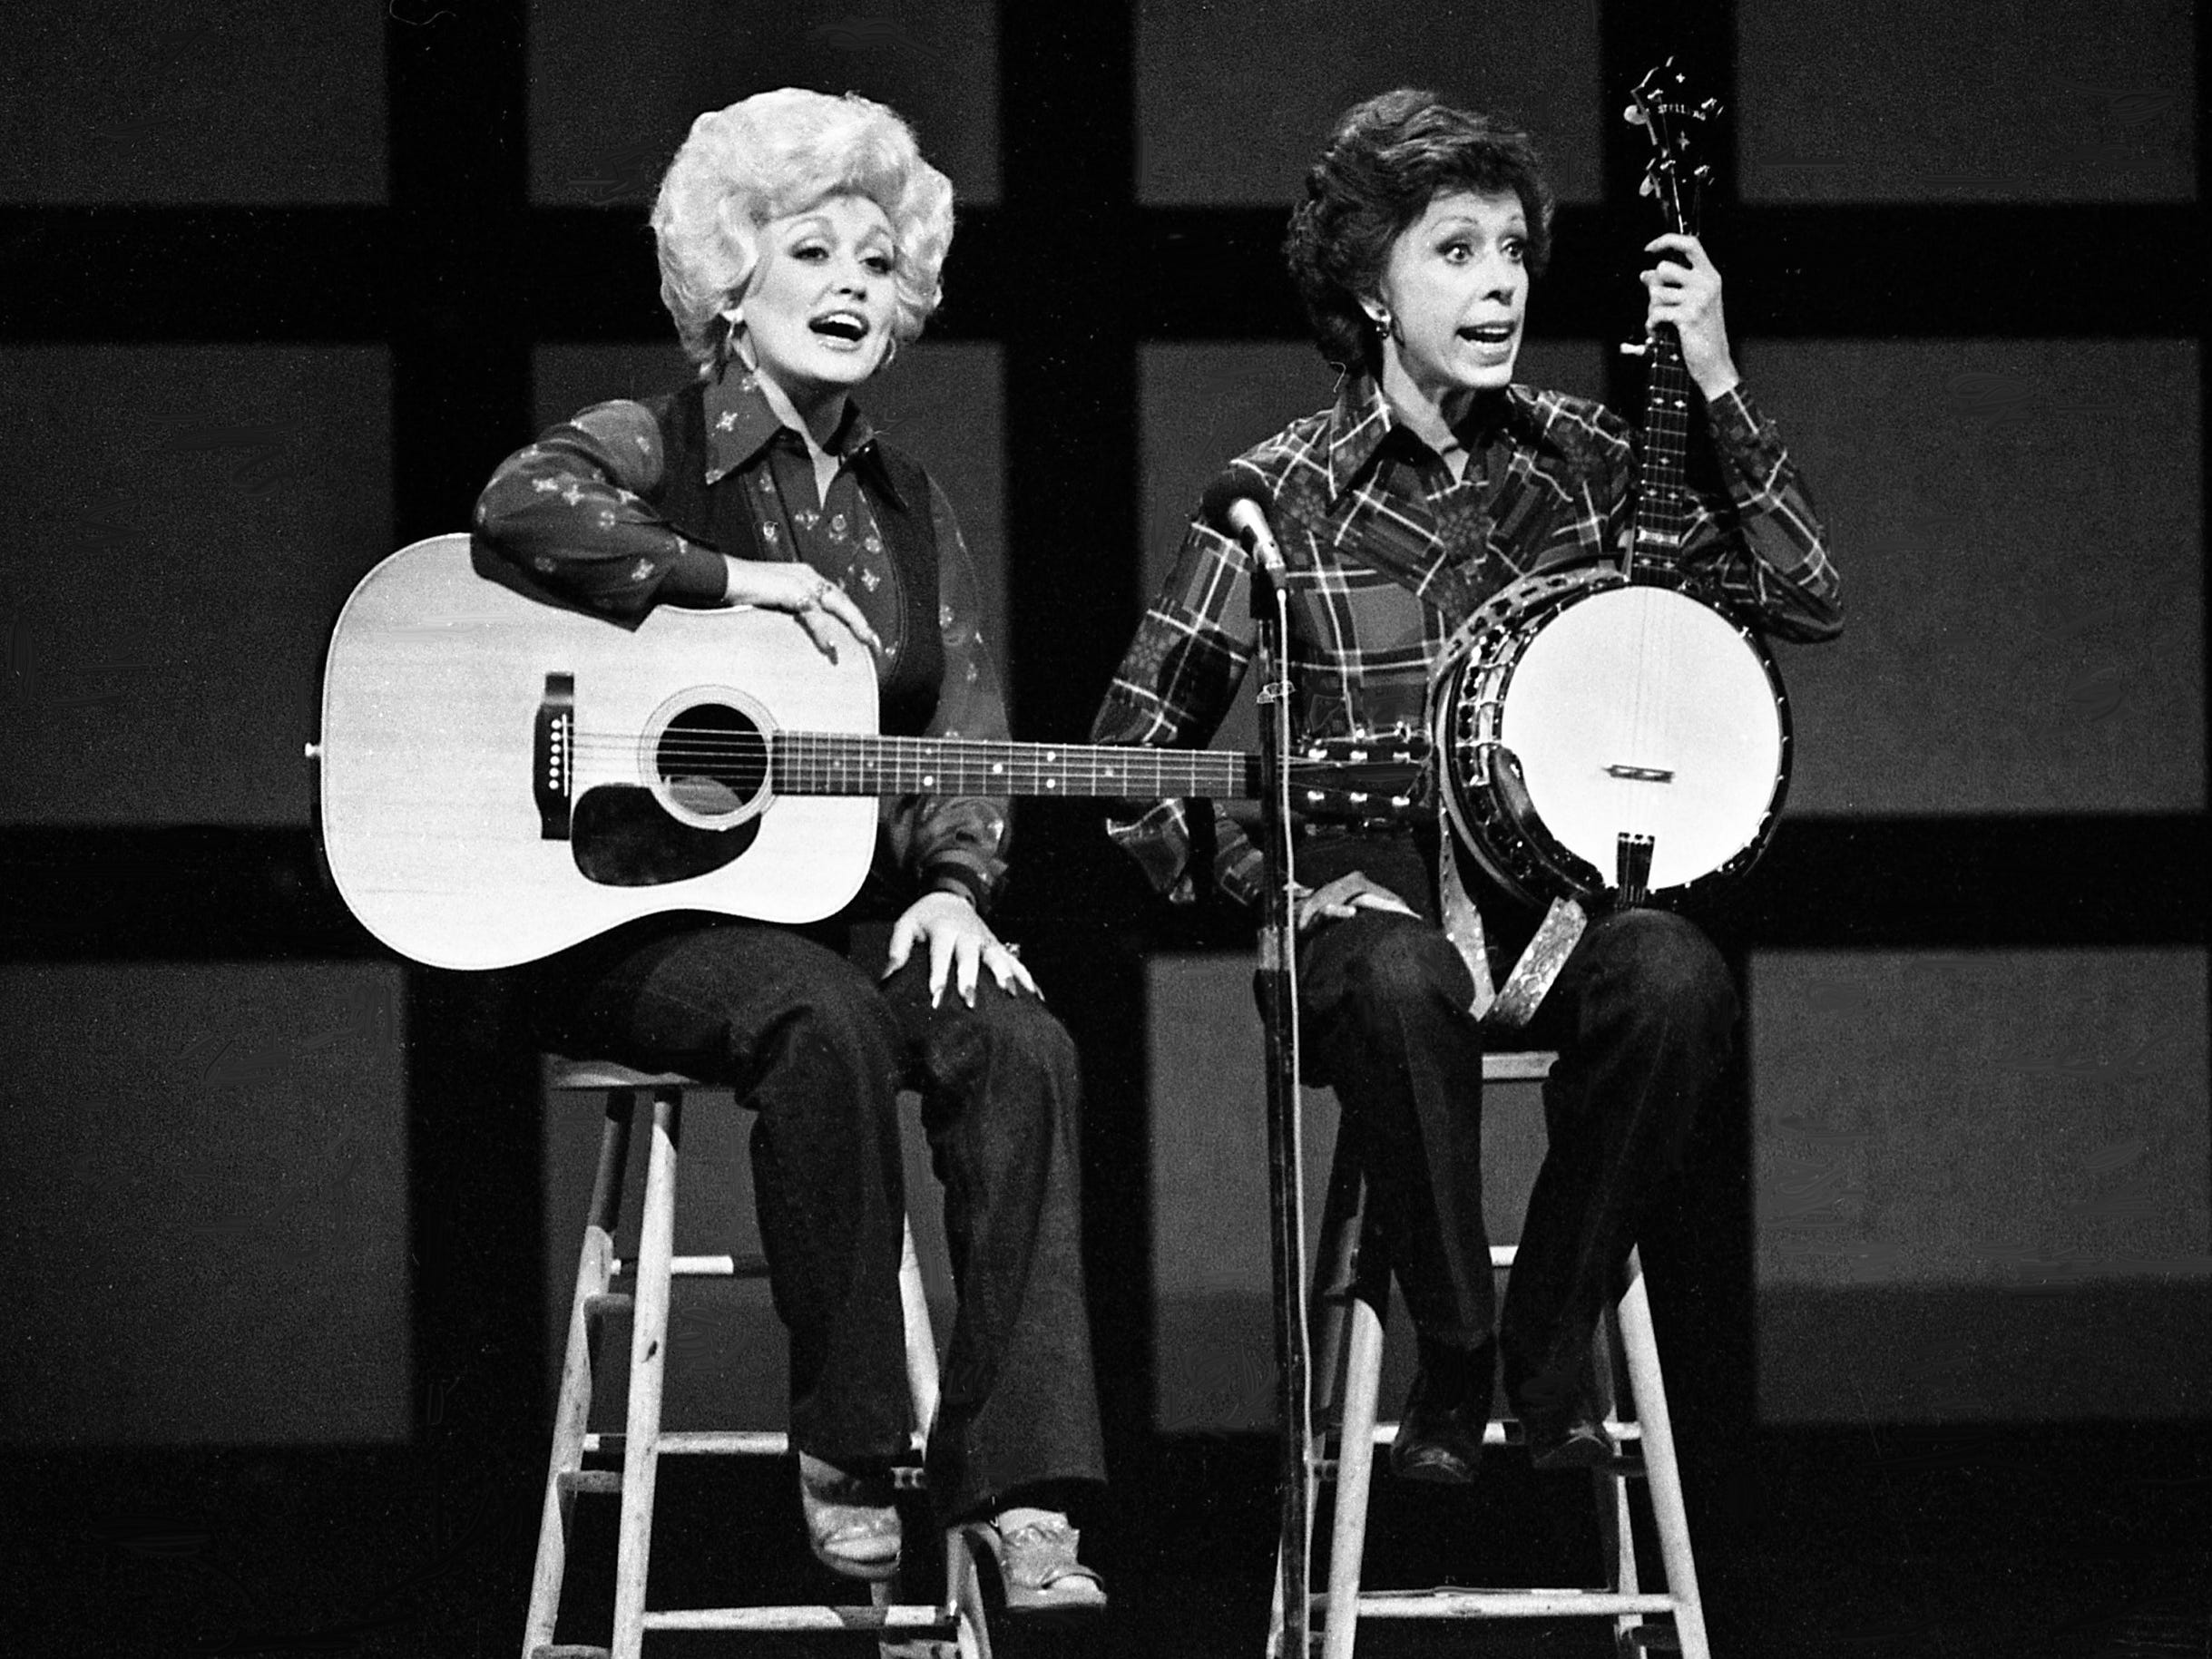 """Dolly Parton, left, asks if there anyone in the audience who can teach Carol Burnett to play the banjo for the """"No one picks like a Nashville picker"""" skit during the taping of the """"Dolly and Carol in Nashville"""" television special before a packed audience at the Grand Ole Opry House Jan. 10, 1979."""